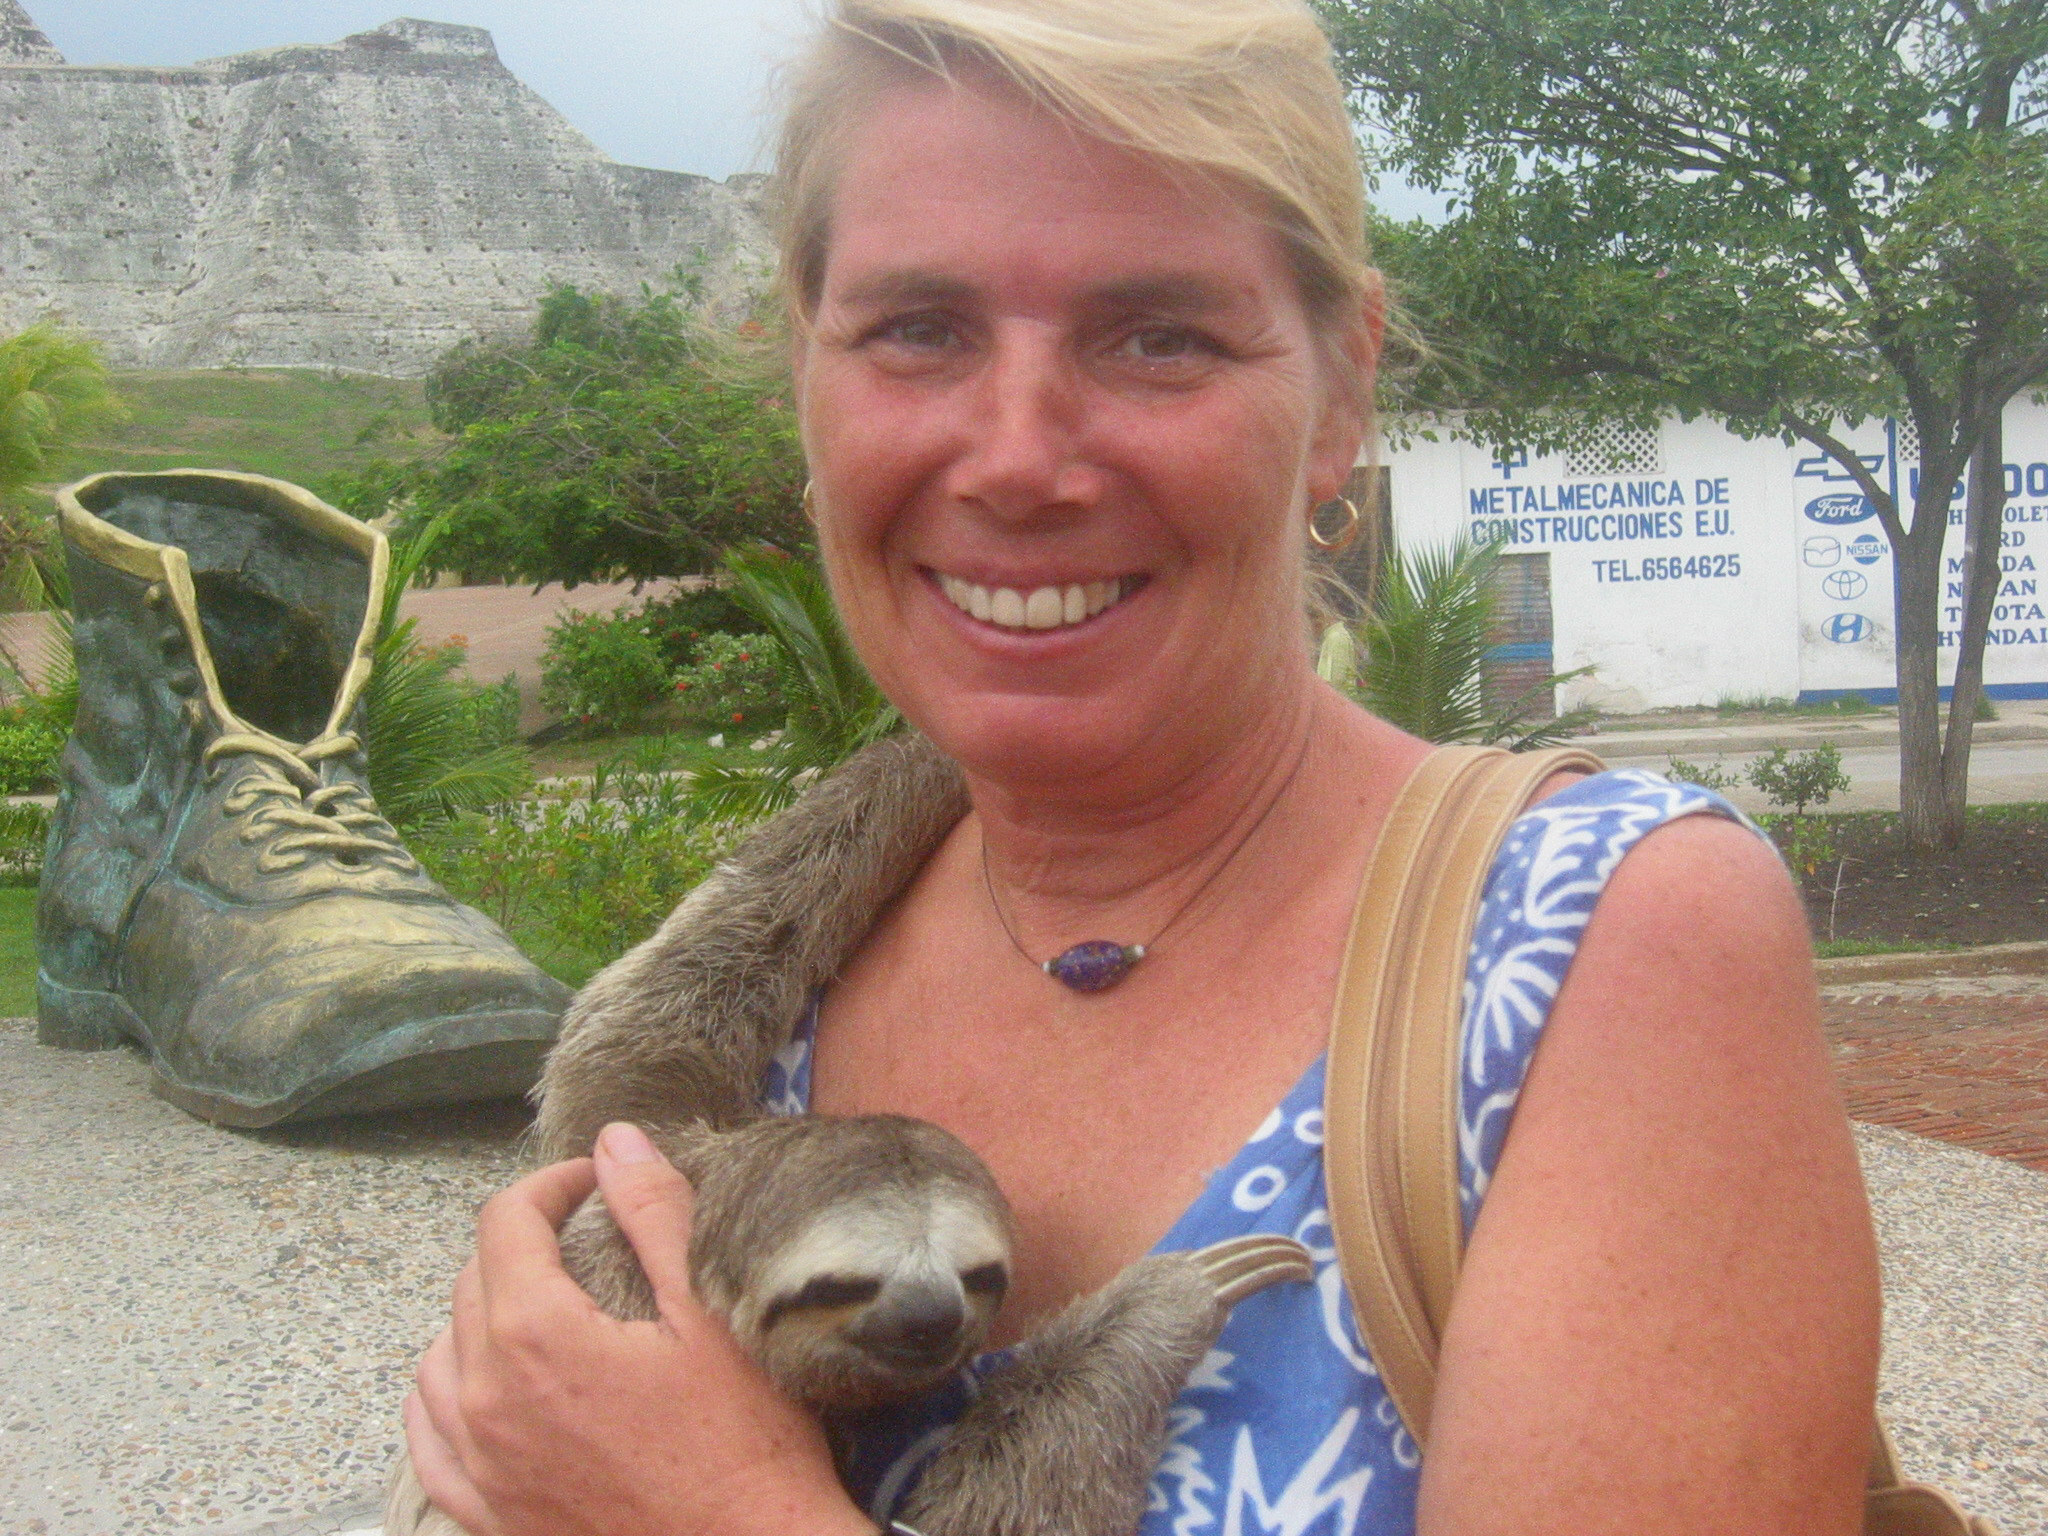 Photo opp with a sloth and an old shoe??